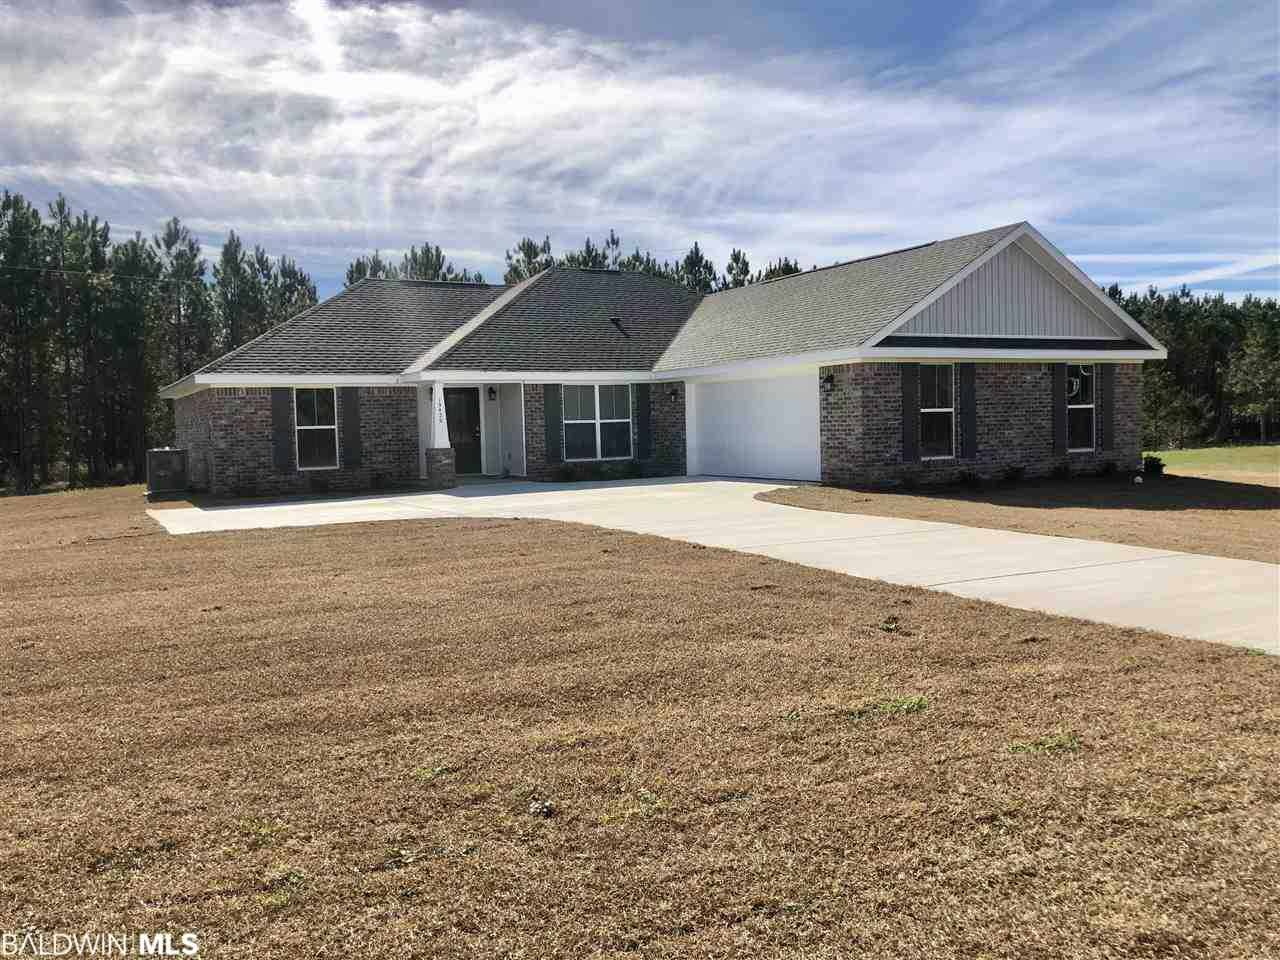 13420 Heather's Glen, Silverhill, AL 36576